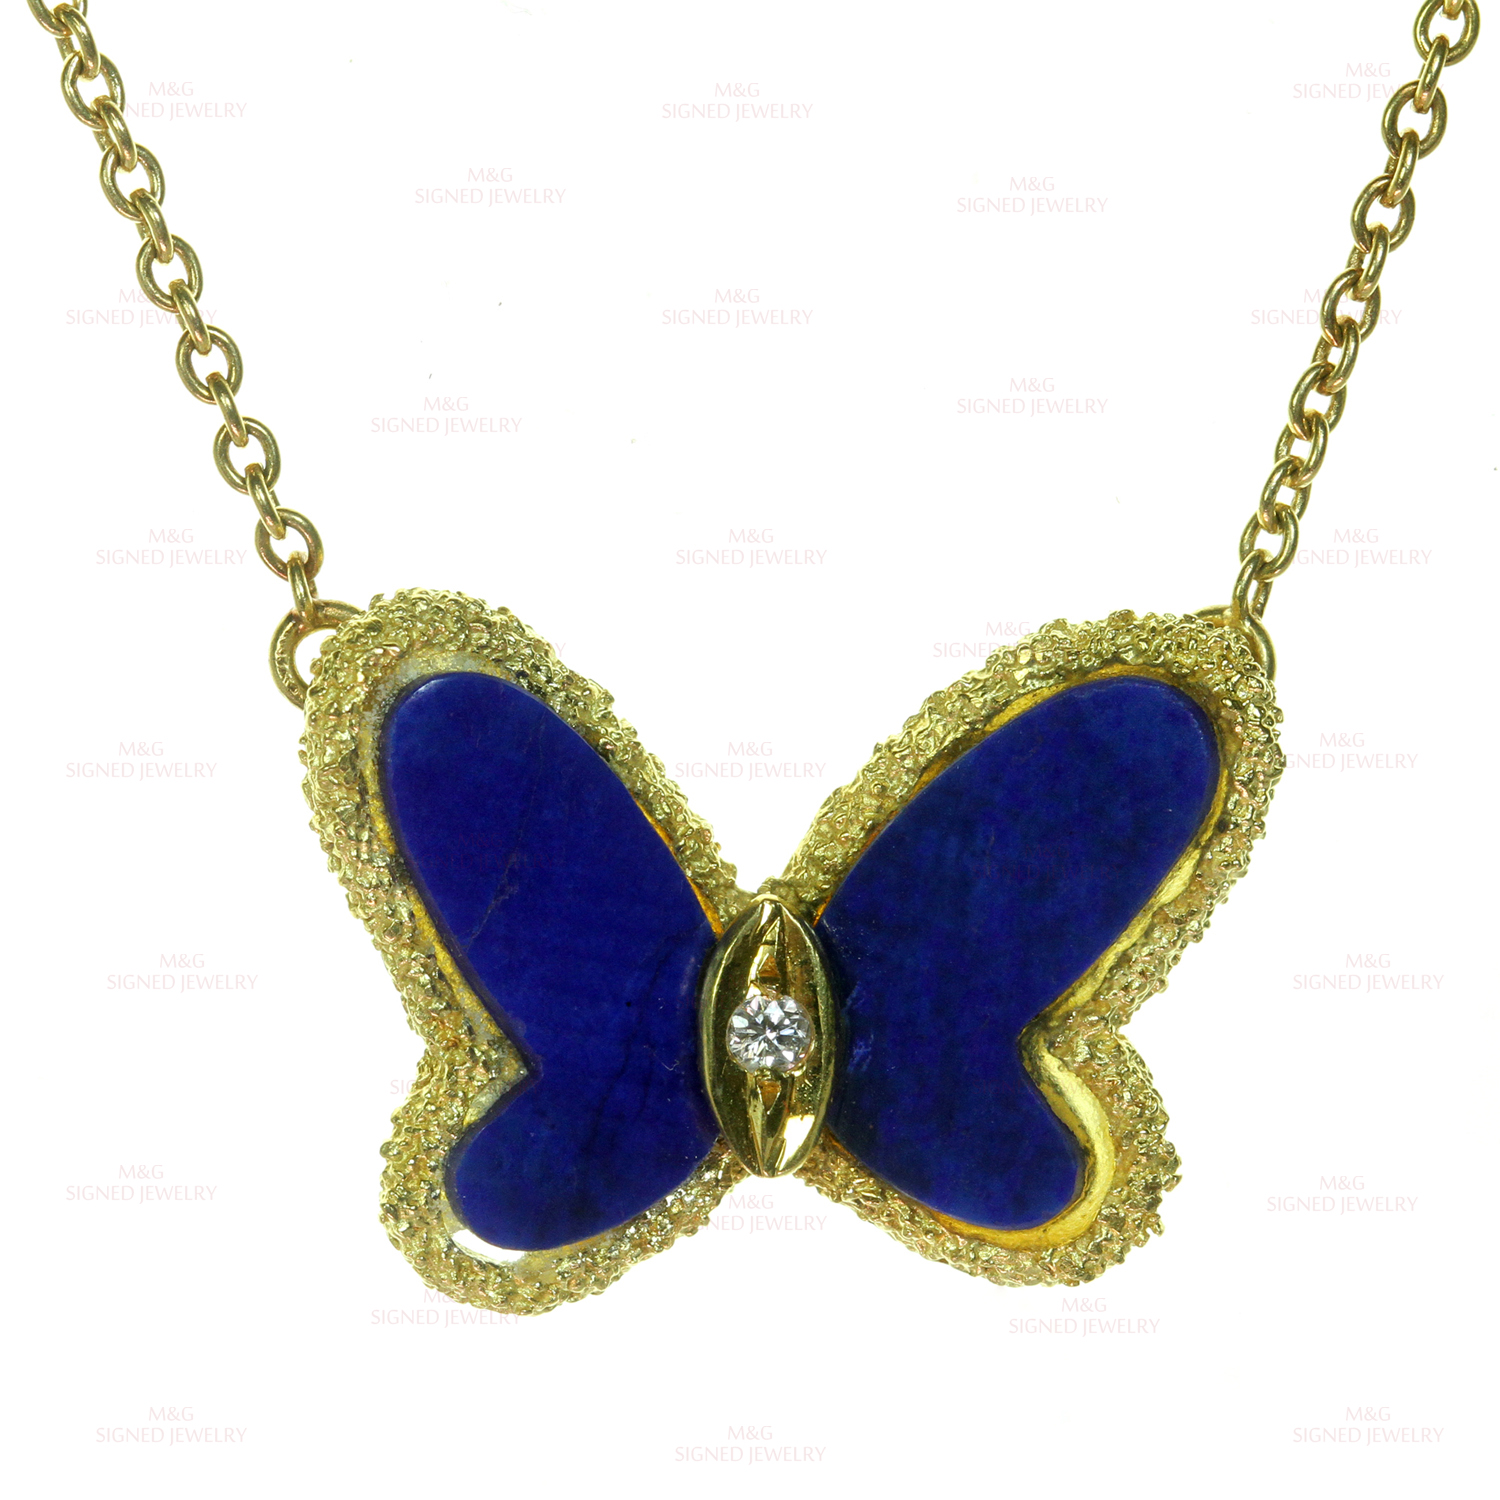 VAN CLEEF & ARPELS Diamond Lapis Lazuli 18k Yellow Gold Butterfly Pendant Necklace